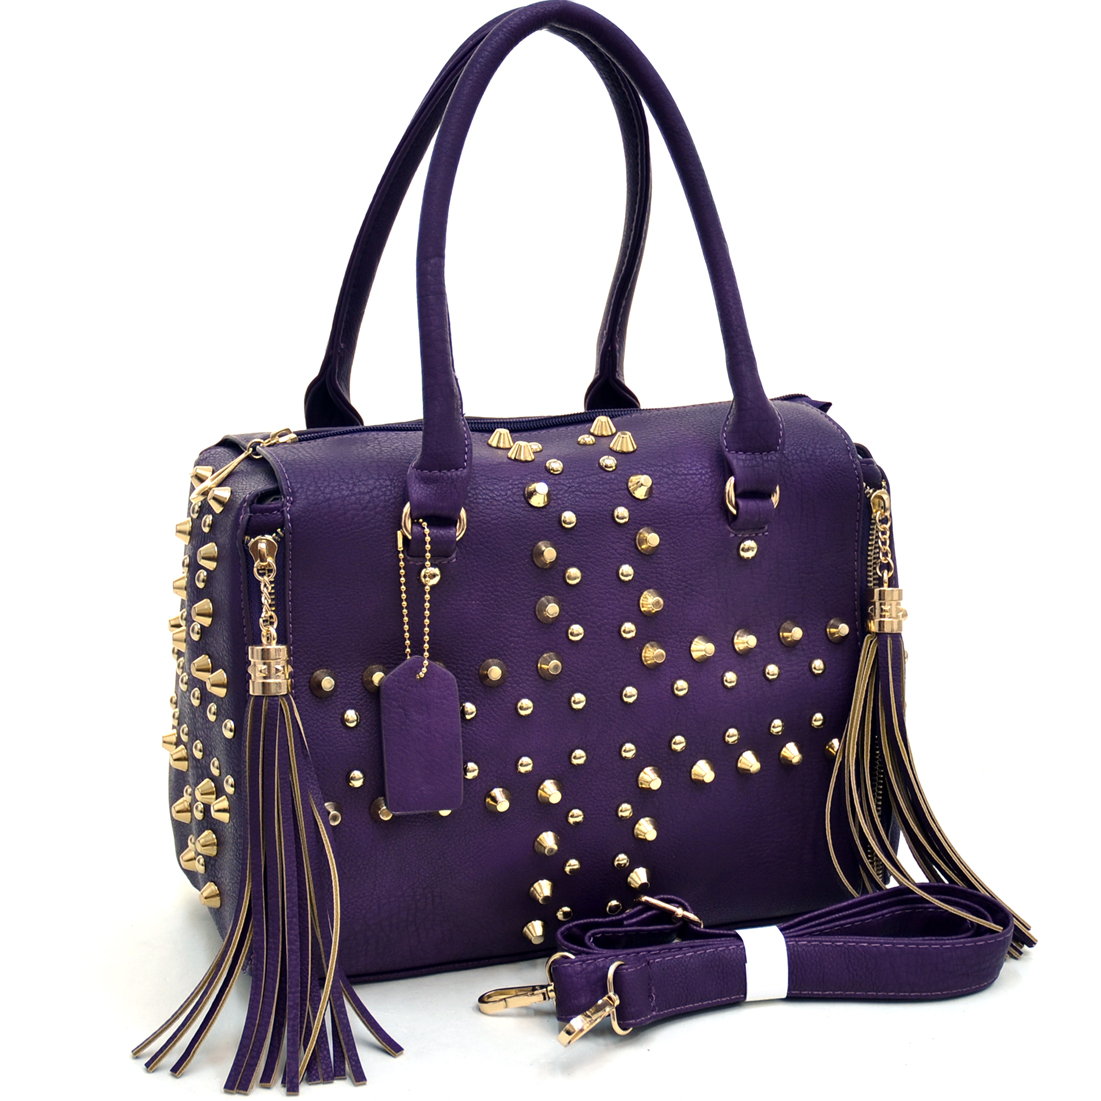 Dasein Multi-Studded Satchel With Fringe Tassels at Sears.com